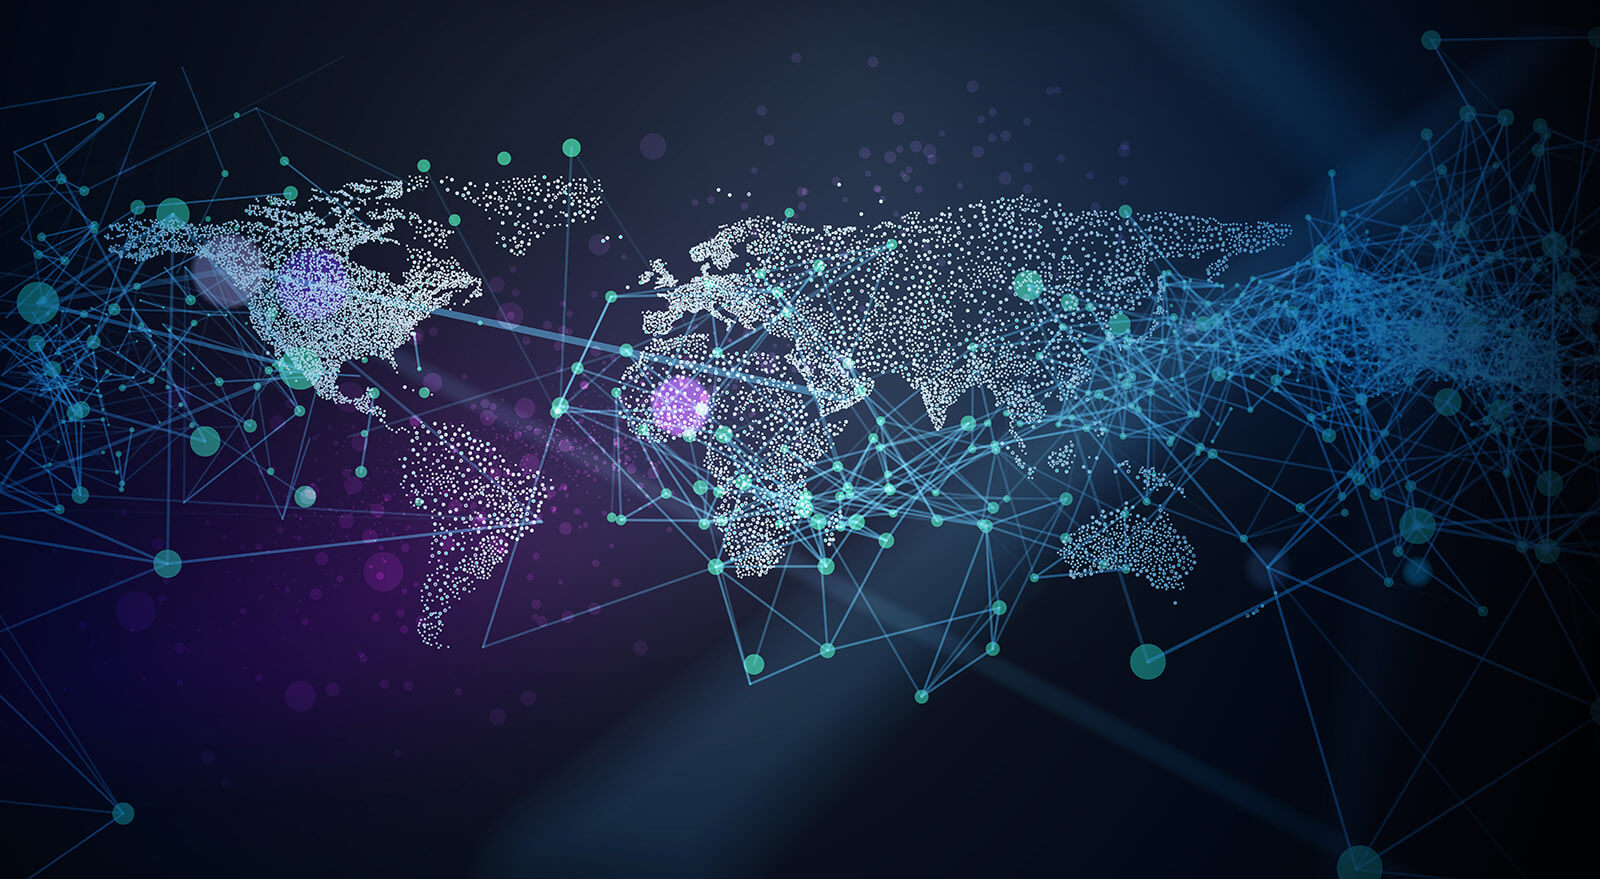 Abstract vector illustration of global network